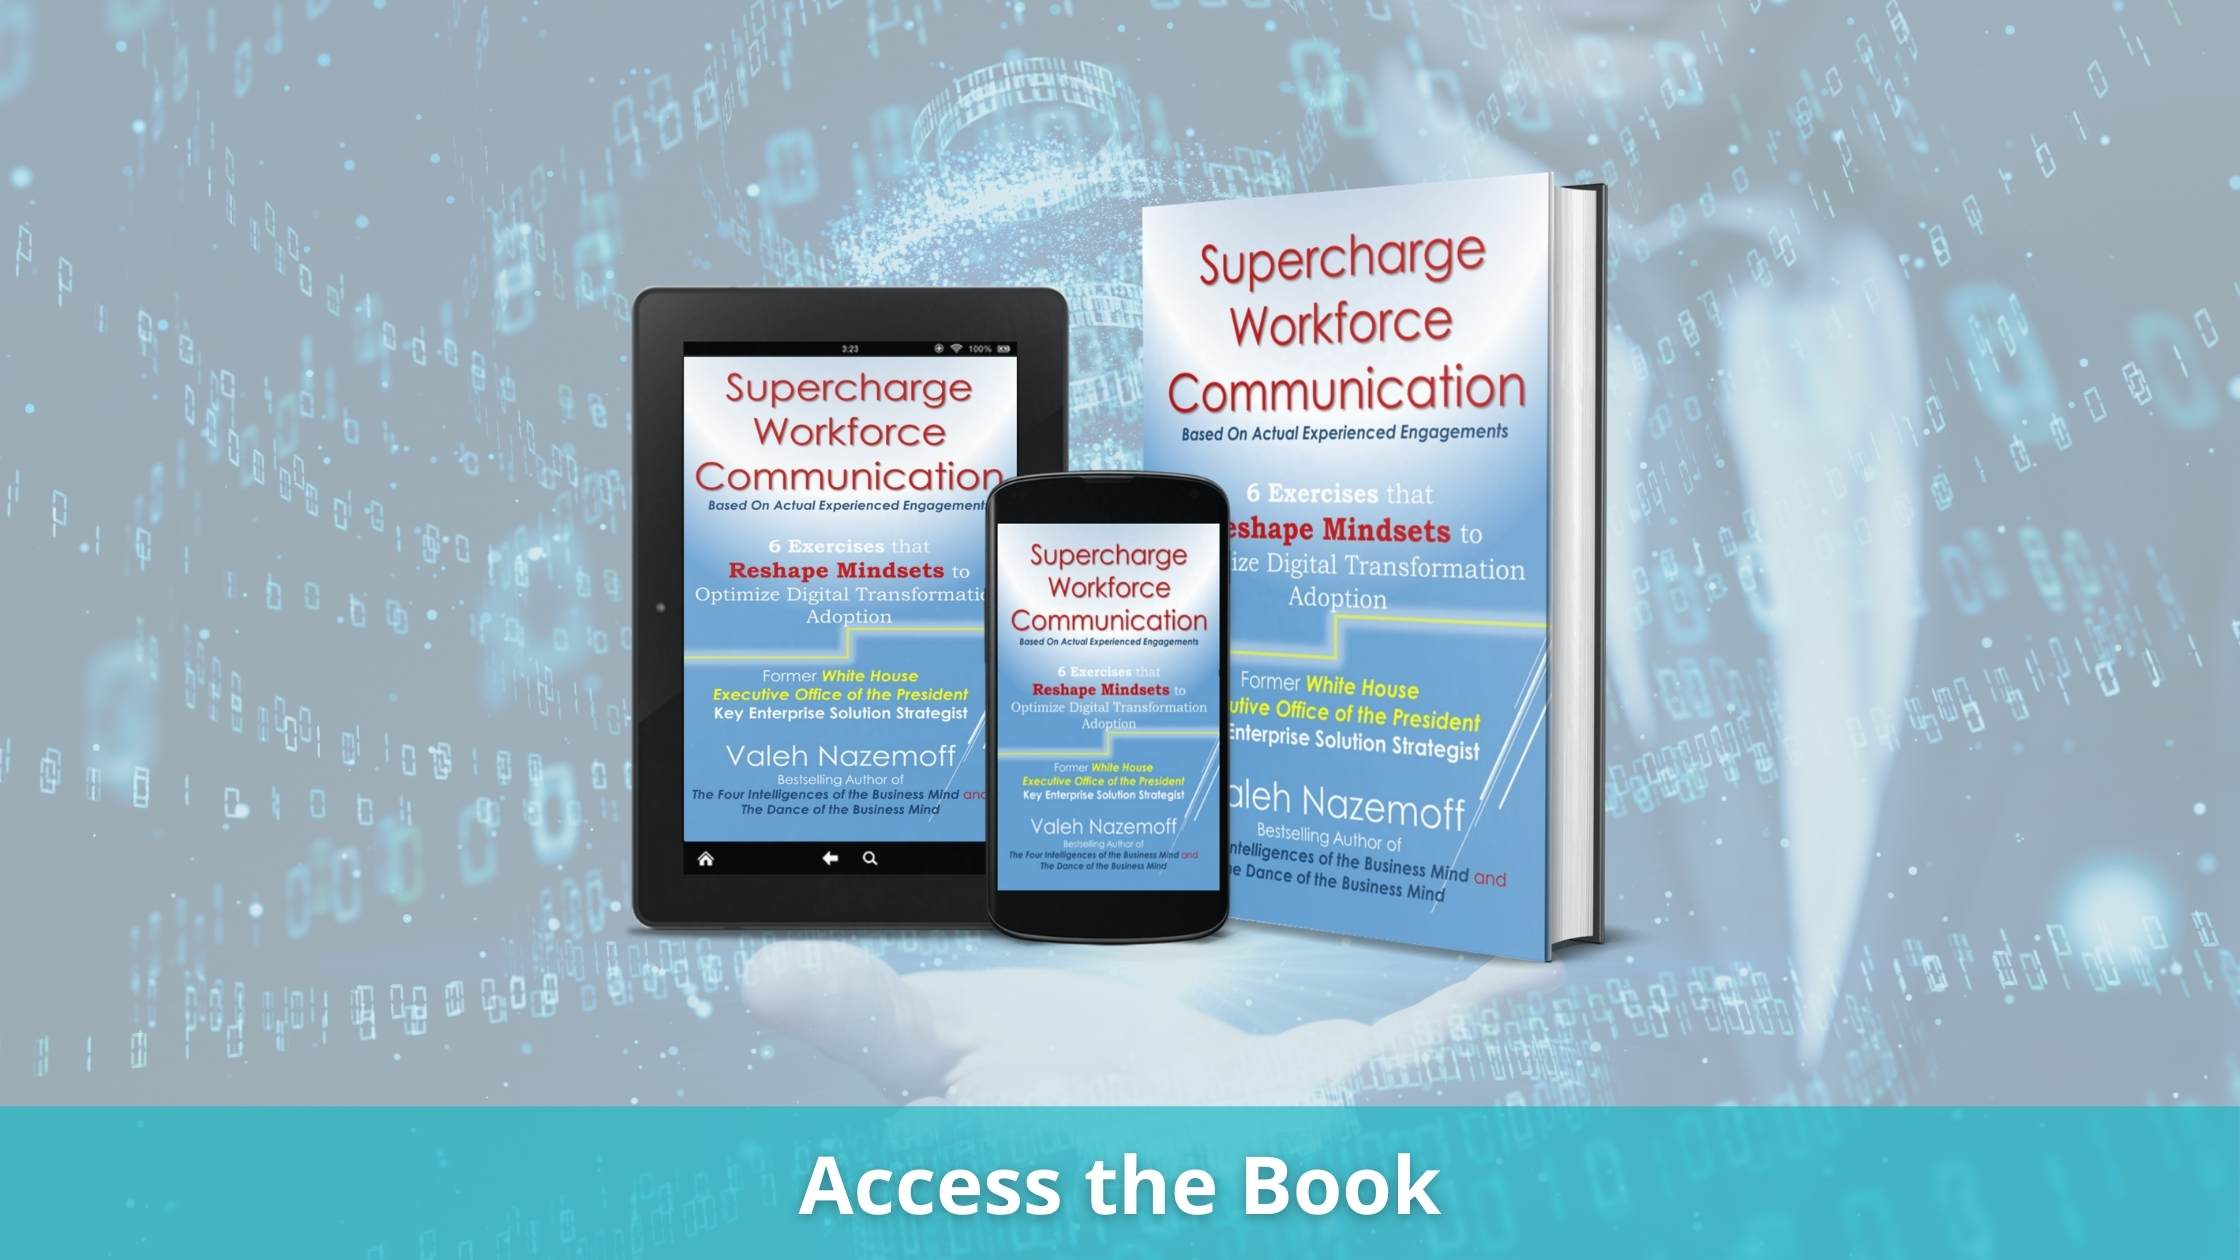 Book – Supercharge Workforce Communication with Exercises to Optimize Digital Adoption